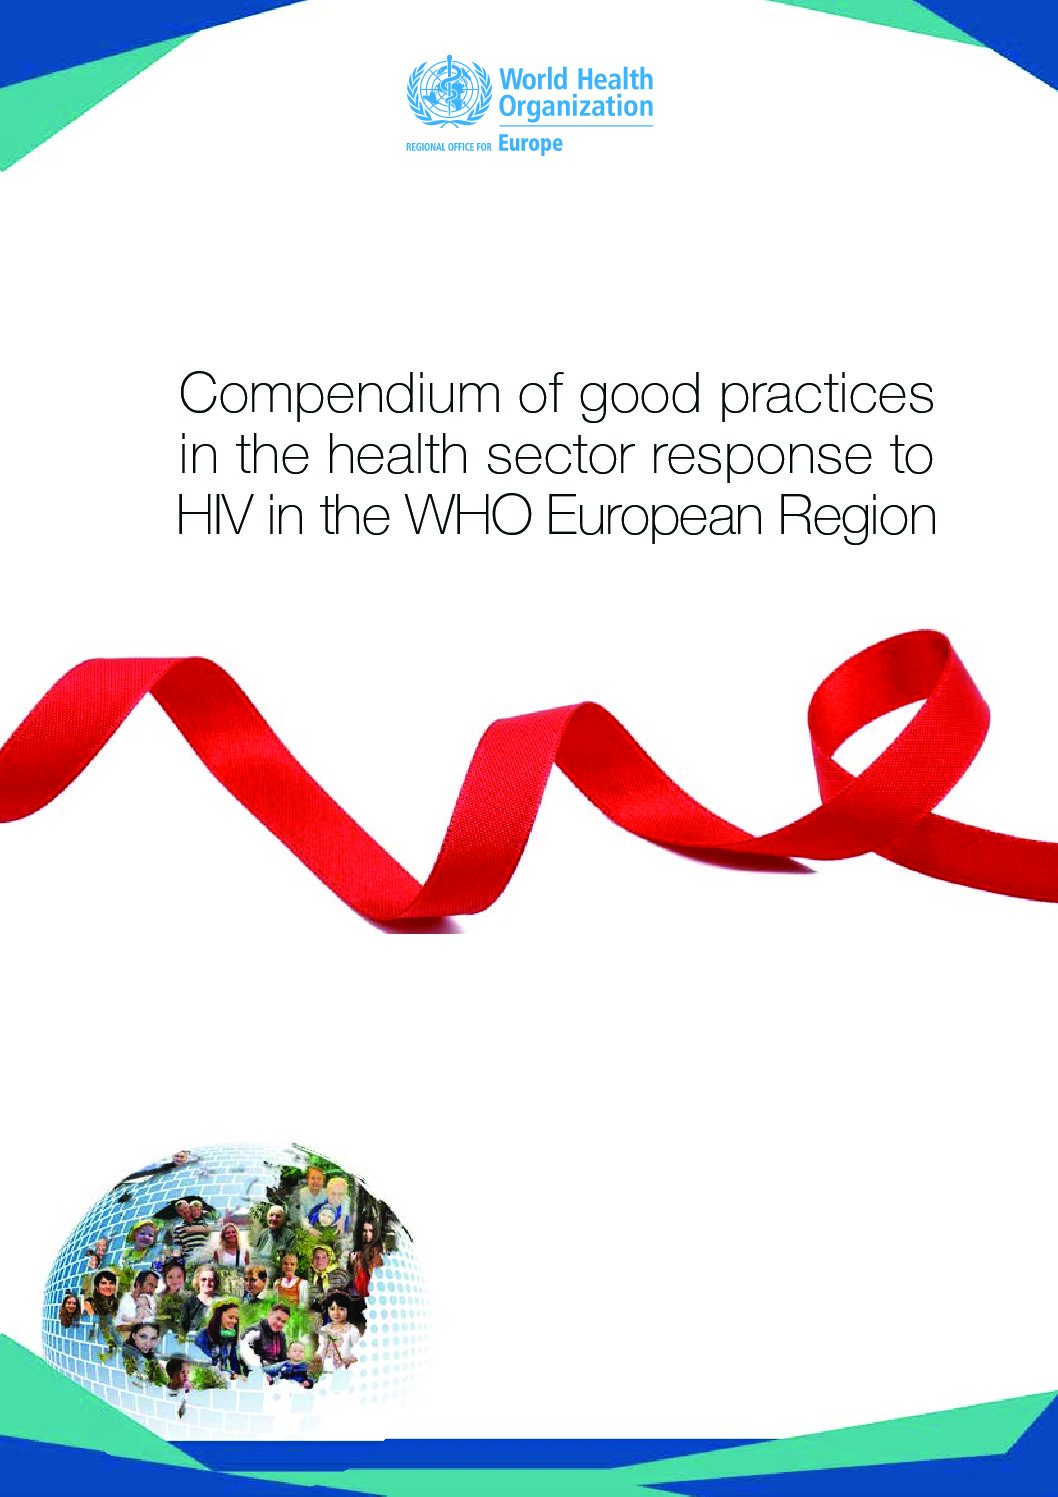 Compendium of good practices in the health sector response to HIV in the WHO European Region (2018)